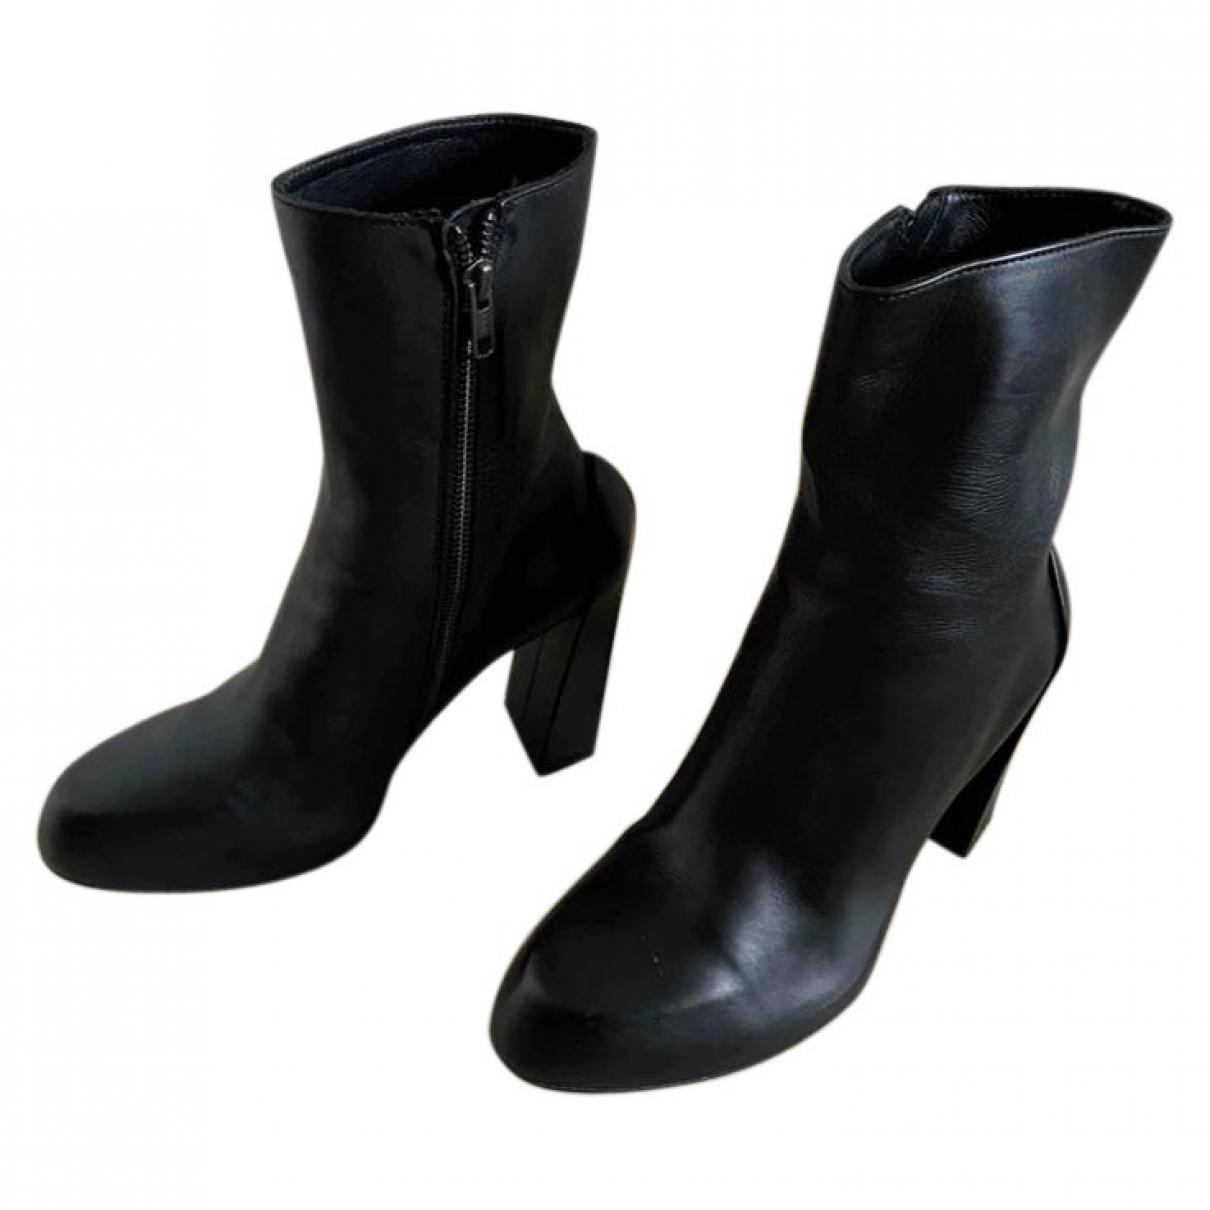 Pre-owned - Heels Ann Demeulemeester Sale Find Great cCKpodeA42